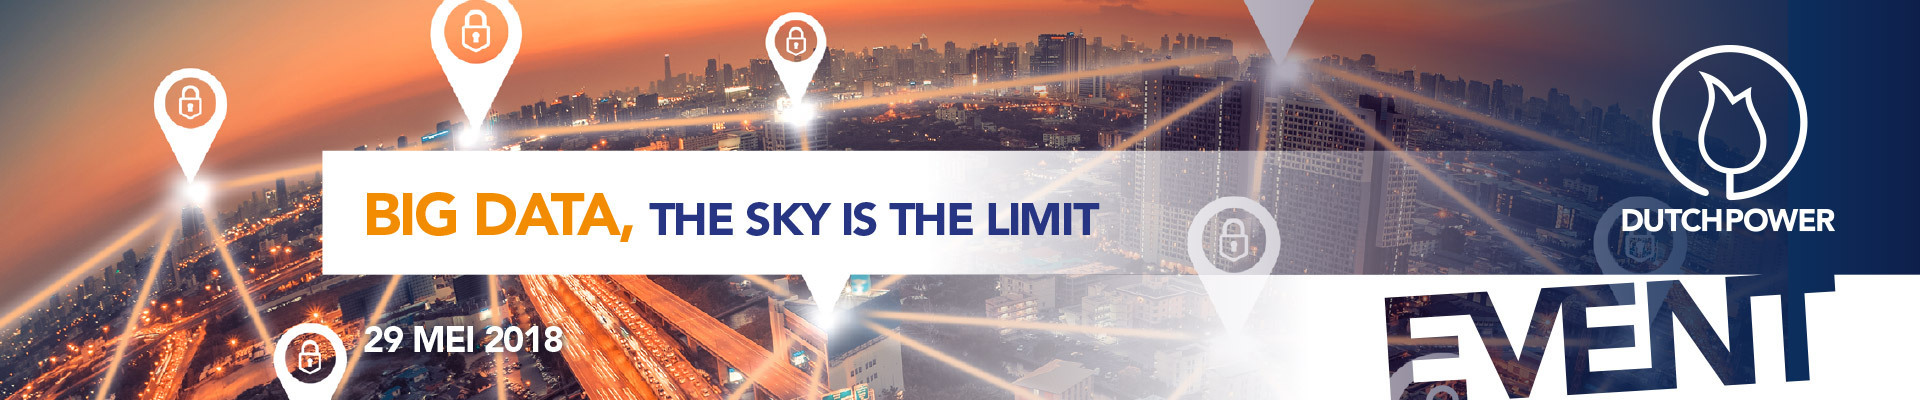 Big Data, the SKY is the limit